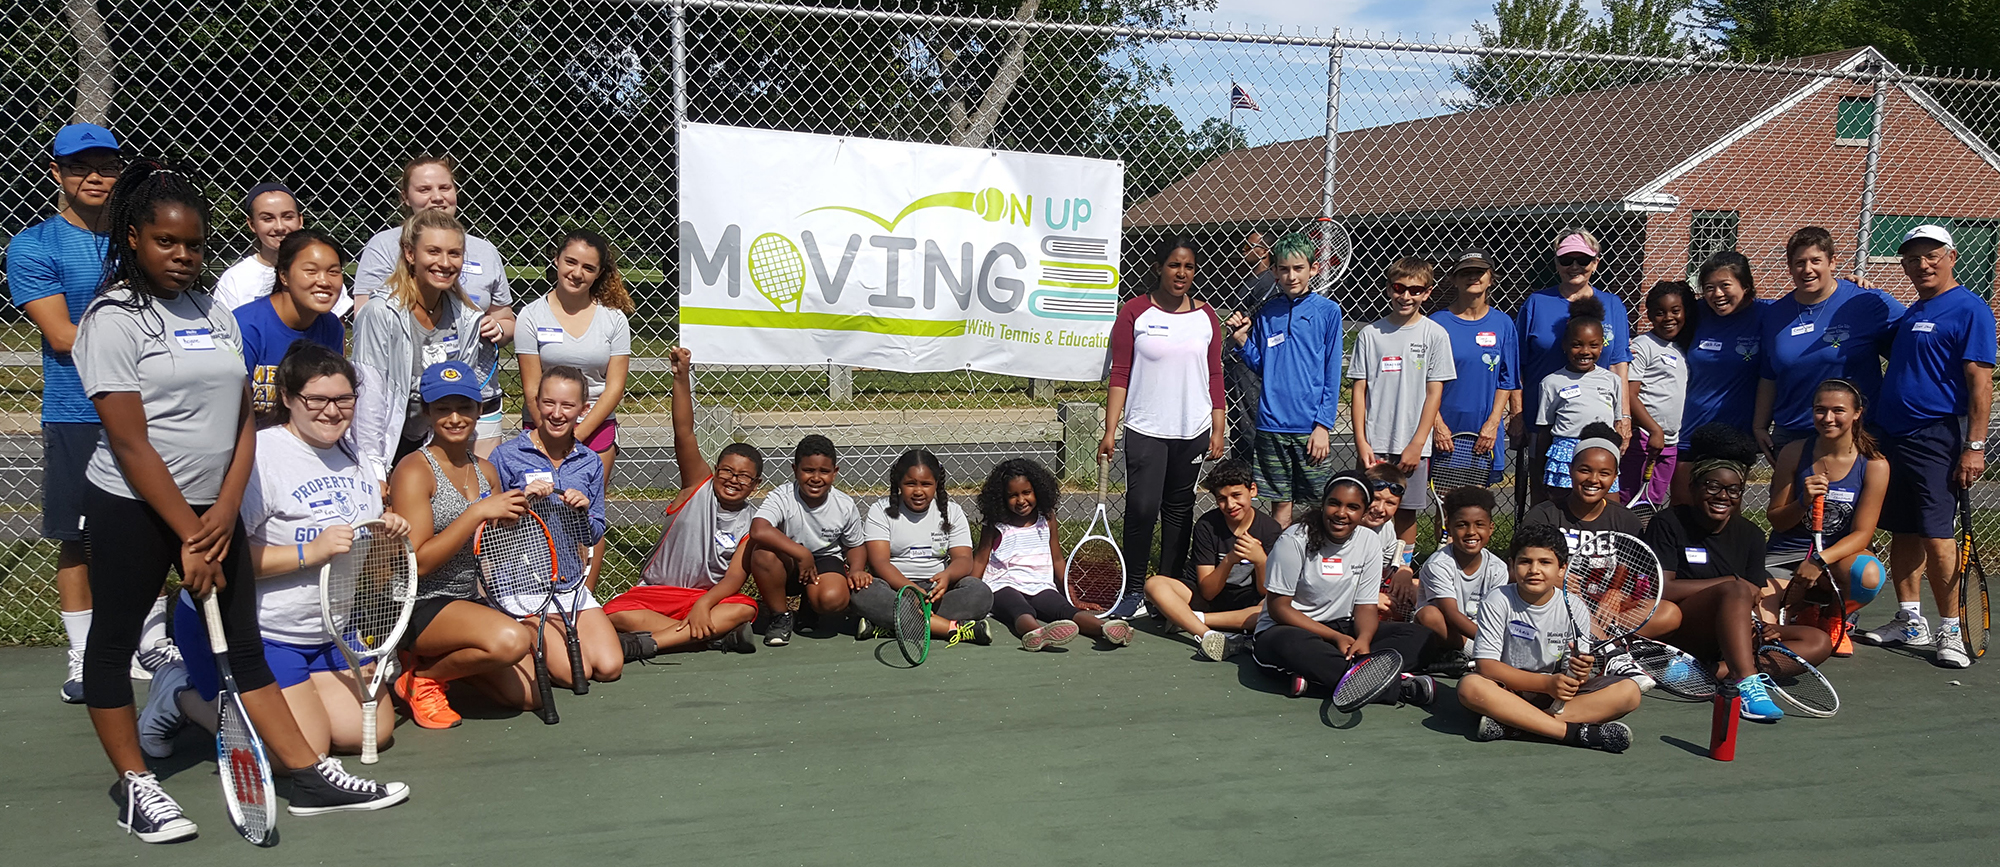 "MASSLIVE: ""Moving on Up program again offering free tennis lessons to young people"""